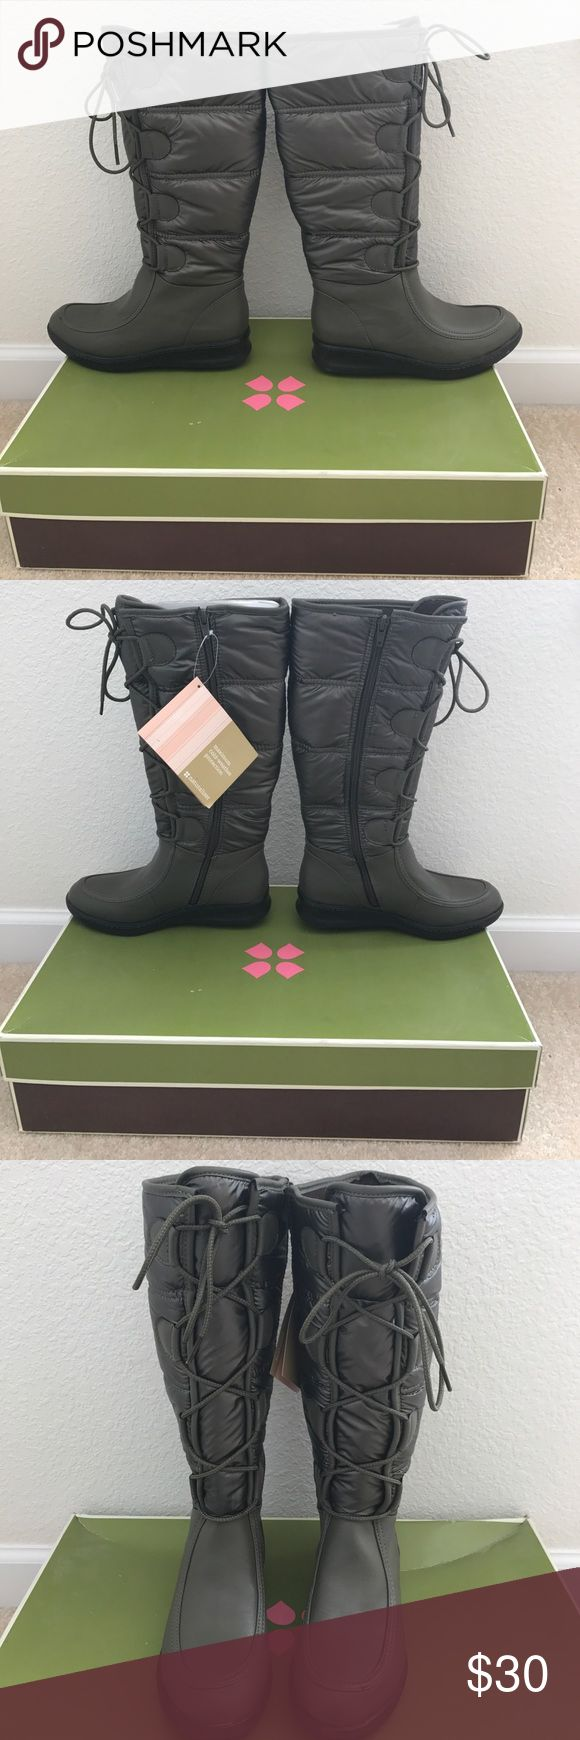 ❣️NATURALIZER❣️COLD WEATHER BOOTS❣️ ❣️NATURALIZER❣️COLD WEATHER BOOTS❣️CALF ZIPPER❣️OLIVE COLOR❣️BRAND NEW❣️NEVER BEEN WORN❣️EXCELLENT CONDITION❣️ Naturalizer Shoes Winter & Rain Boots